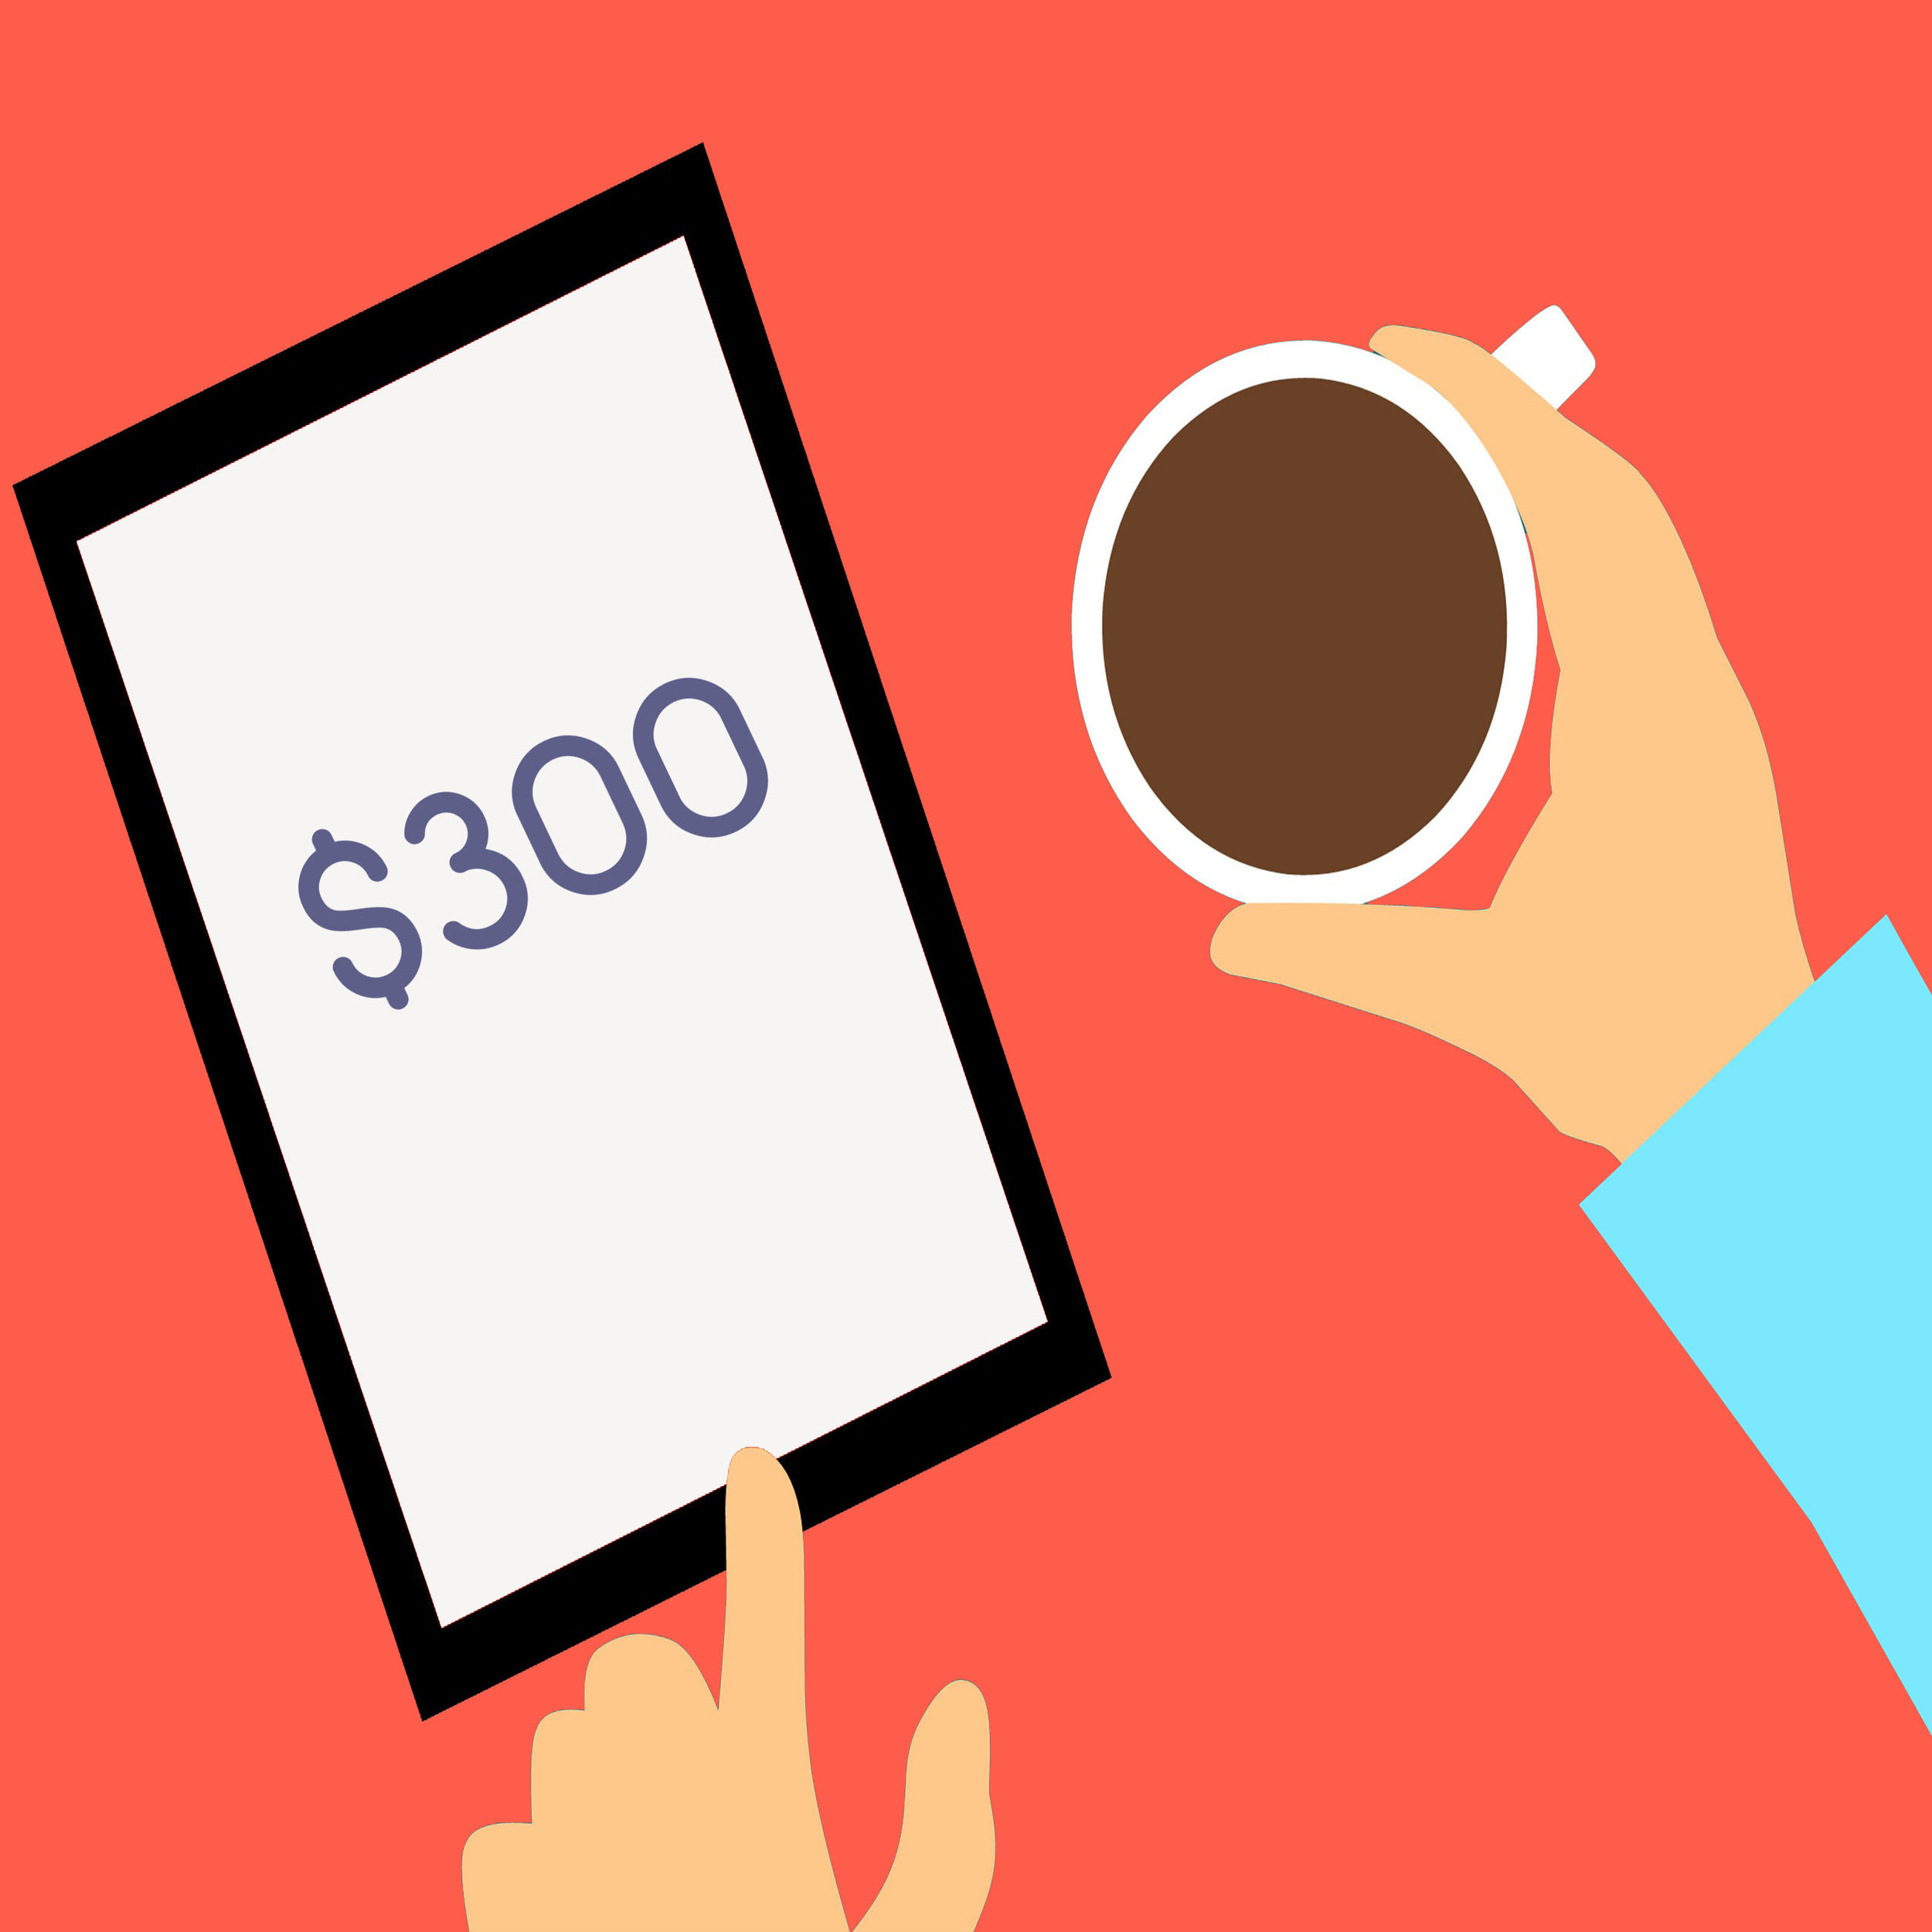 Cordero Law LLC offers the option to come into the office for a one hour in person consultation. The rate for this consultation is $300 and can be booked online in advance.